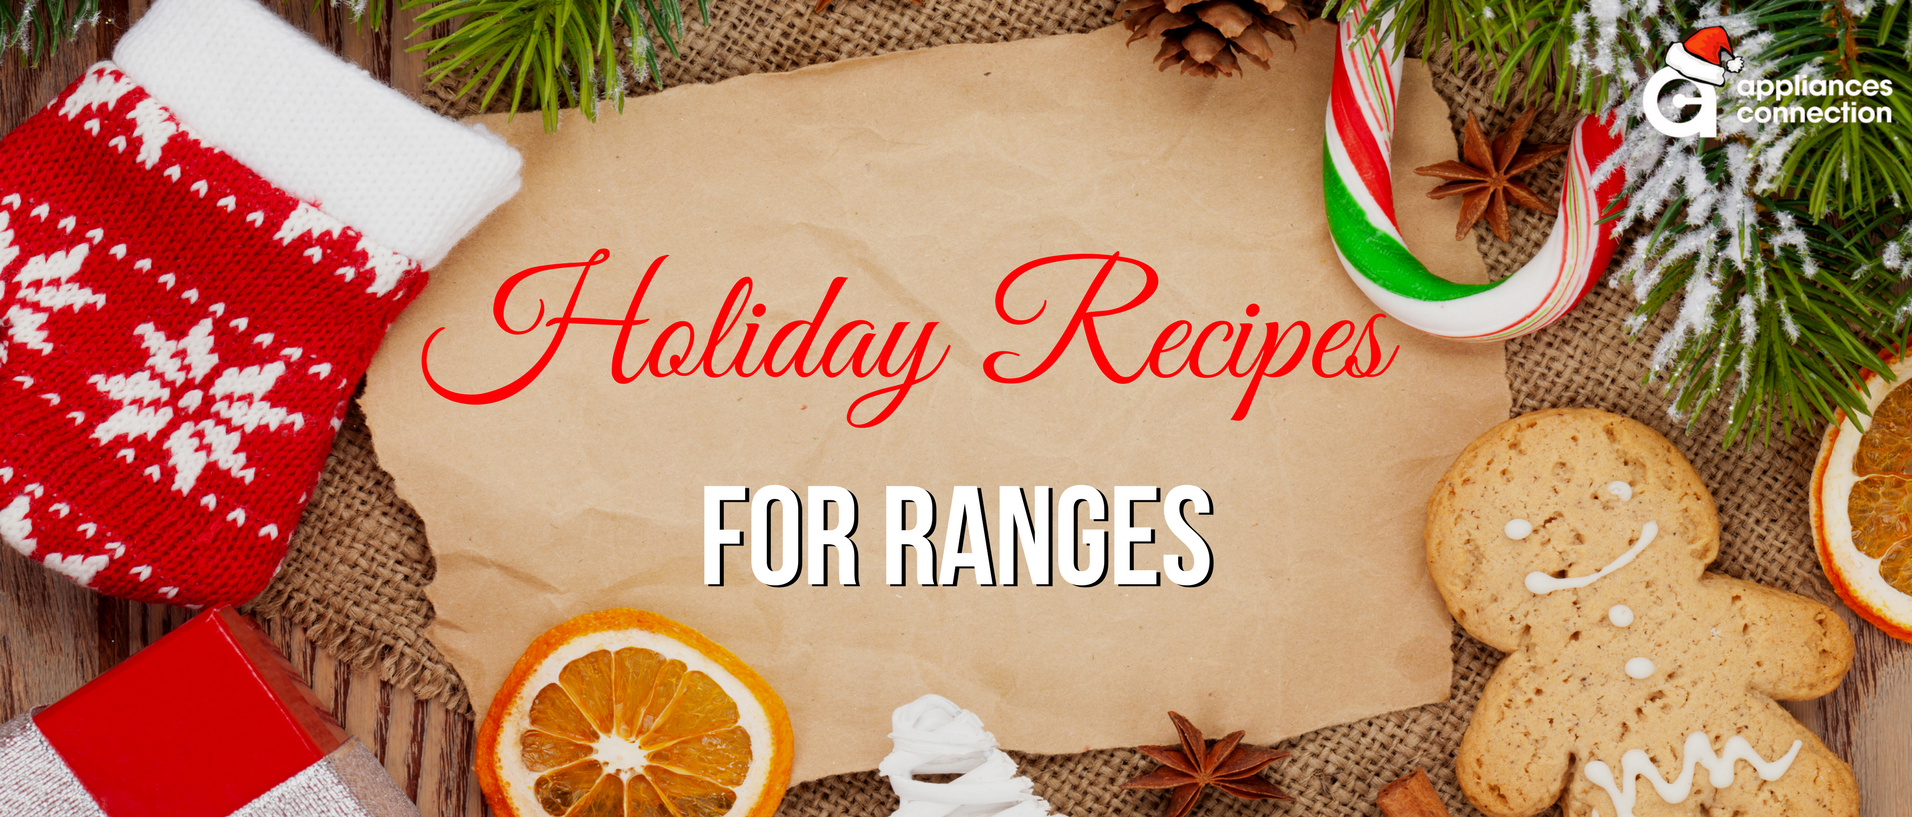 Holiday recipes banner